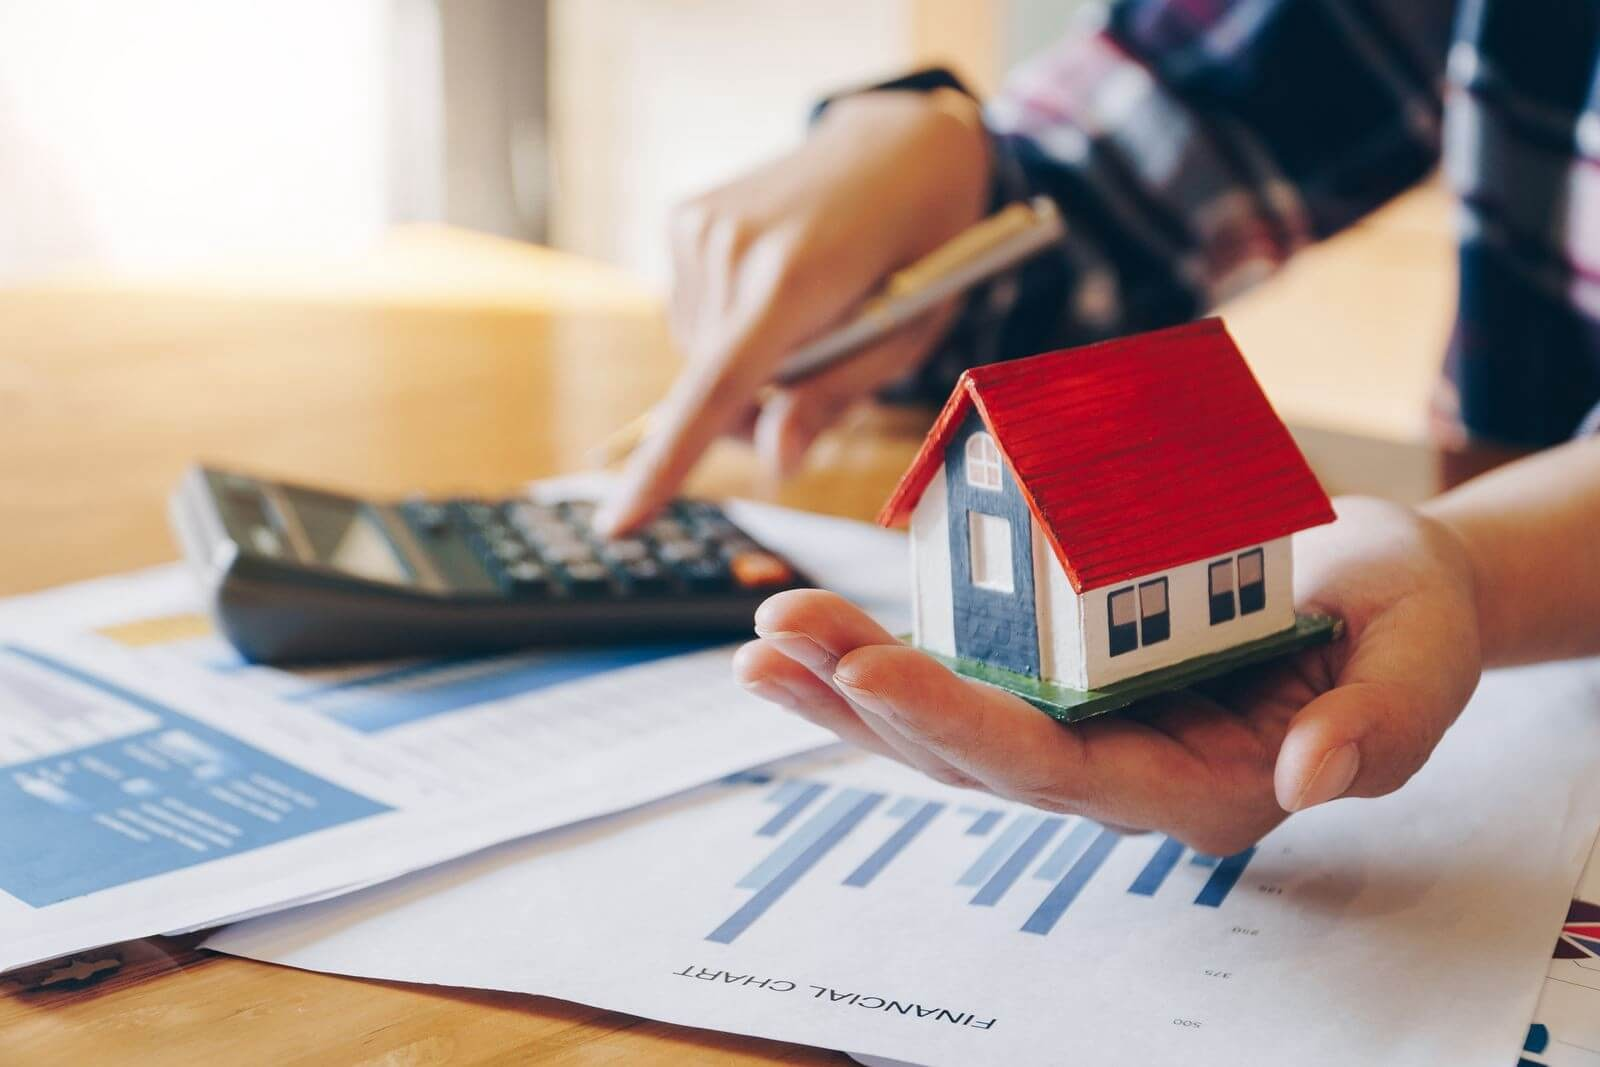 Person using calculator and holding a mini-house in the other hand with real estate documents on the side